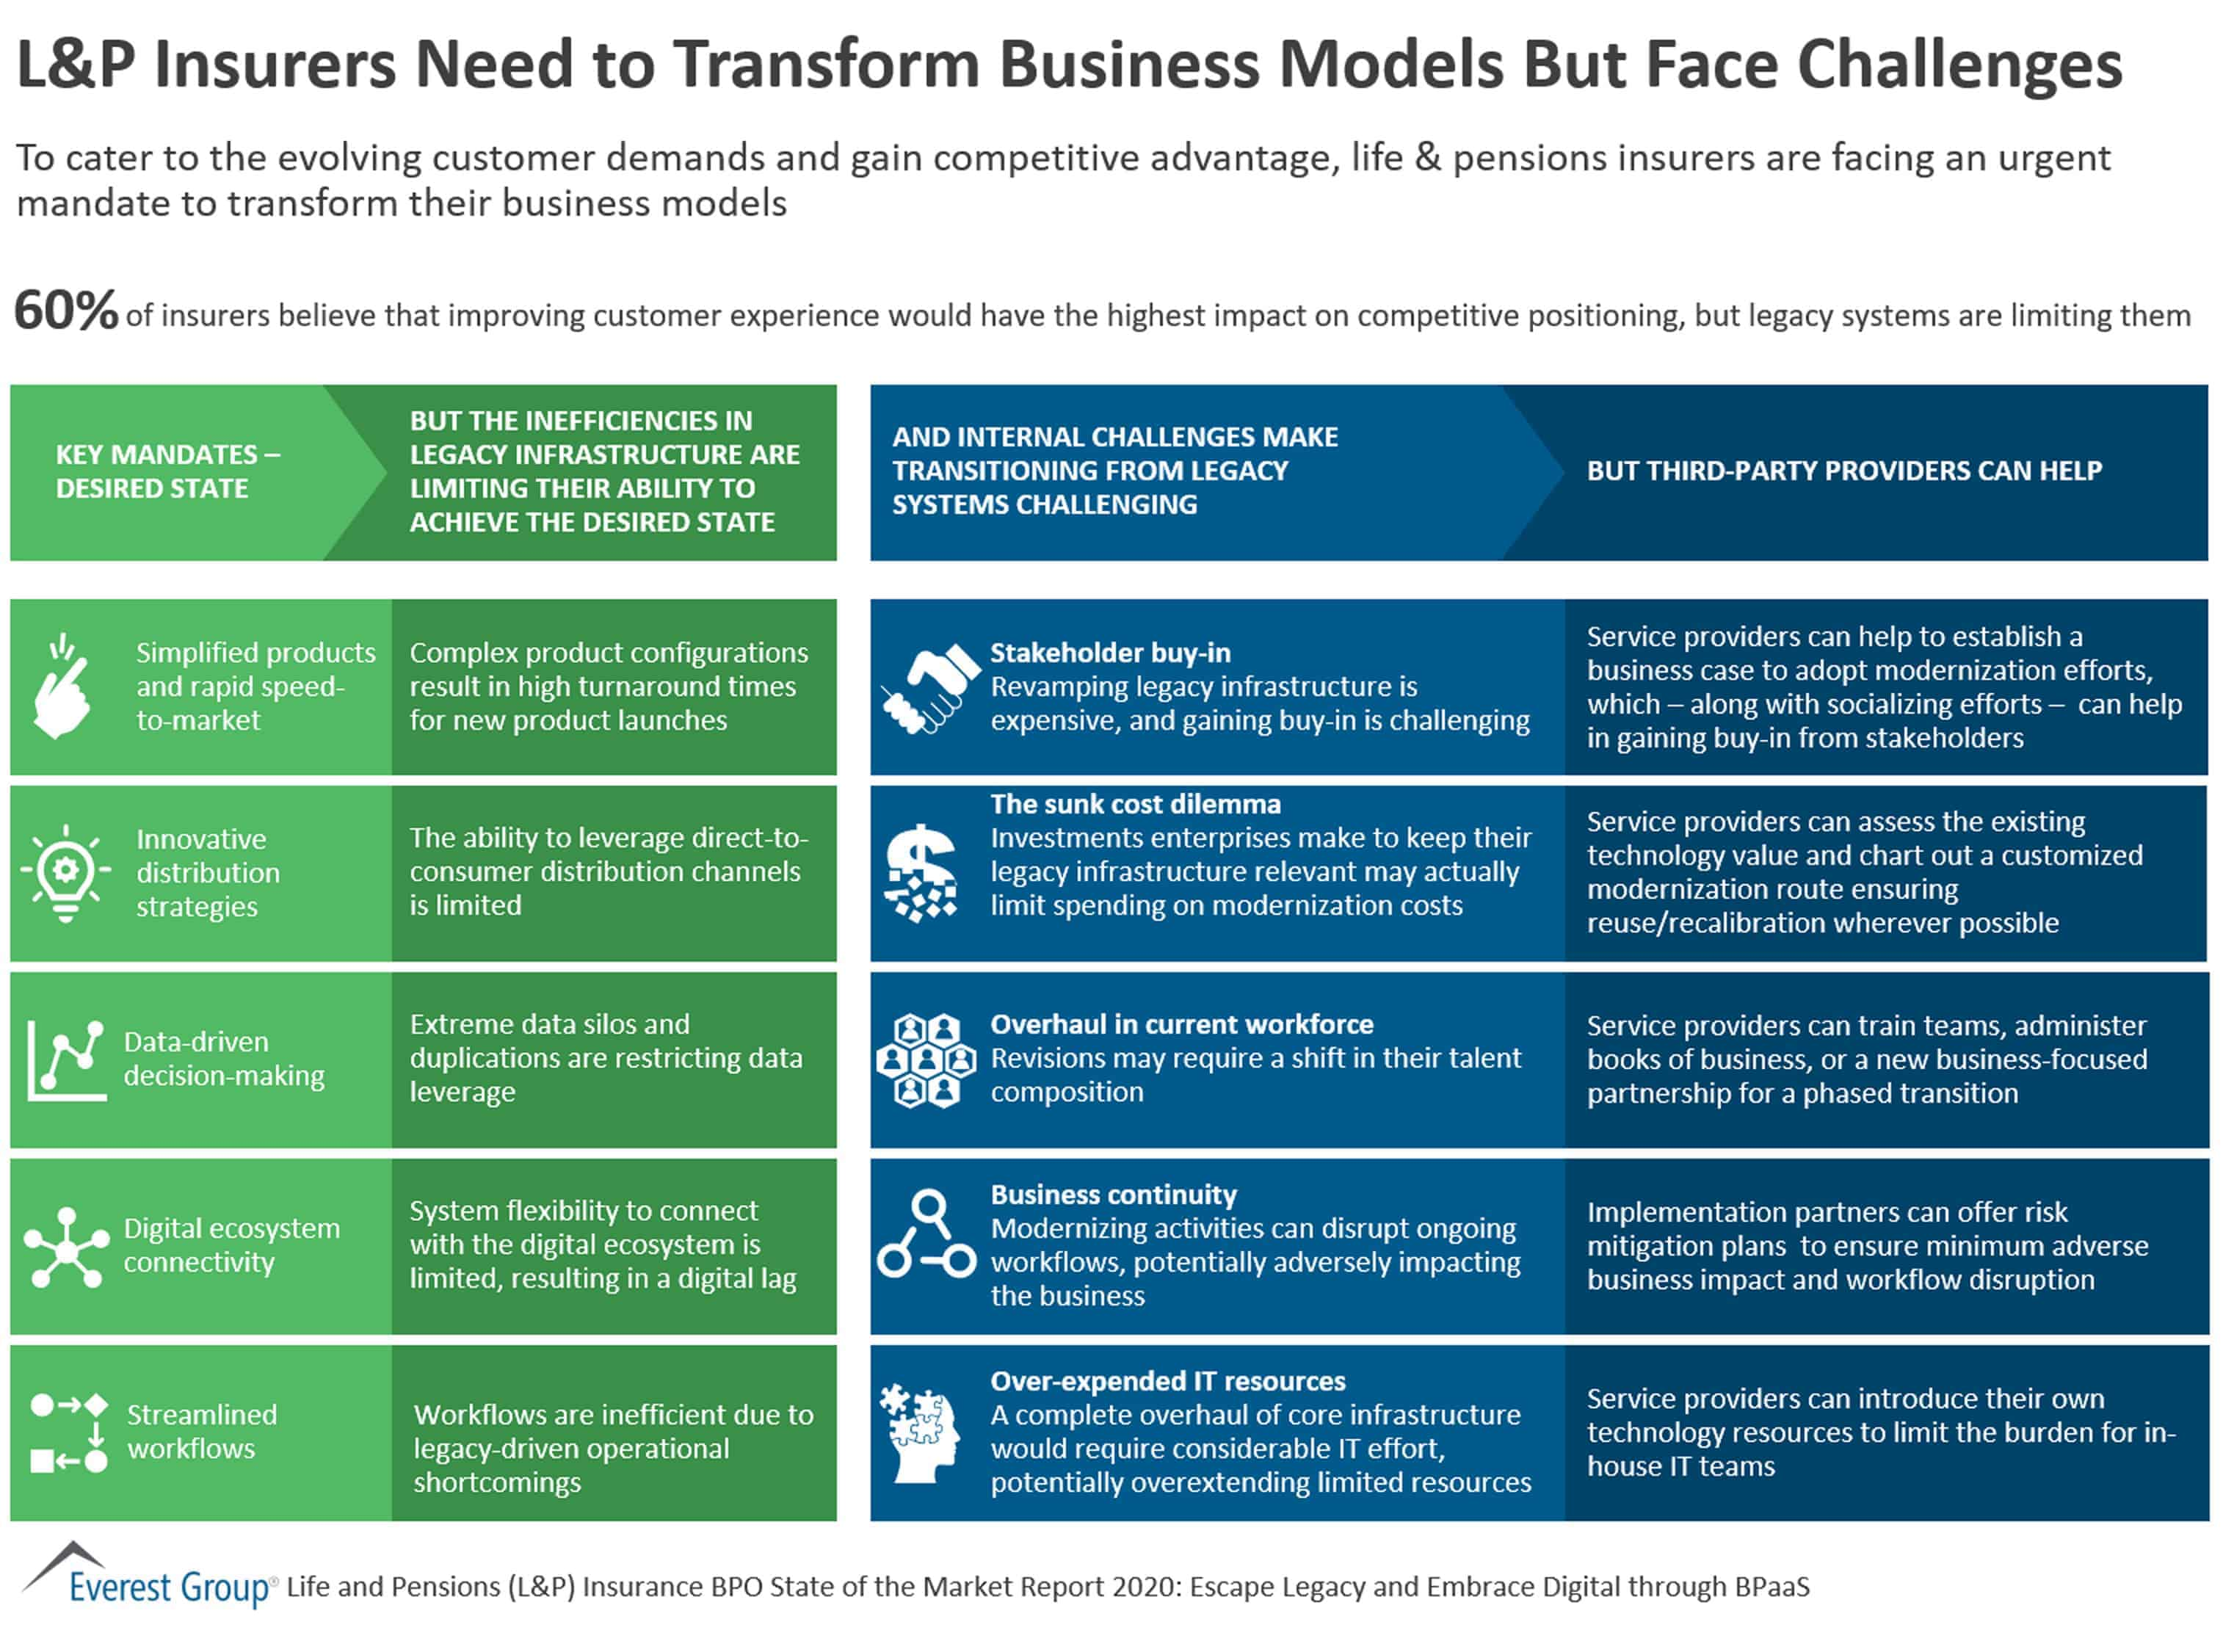 L&P Insurers Need to Transform Business Models But Face Challenges